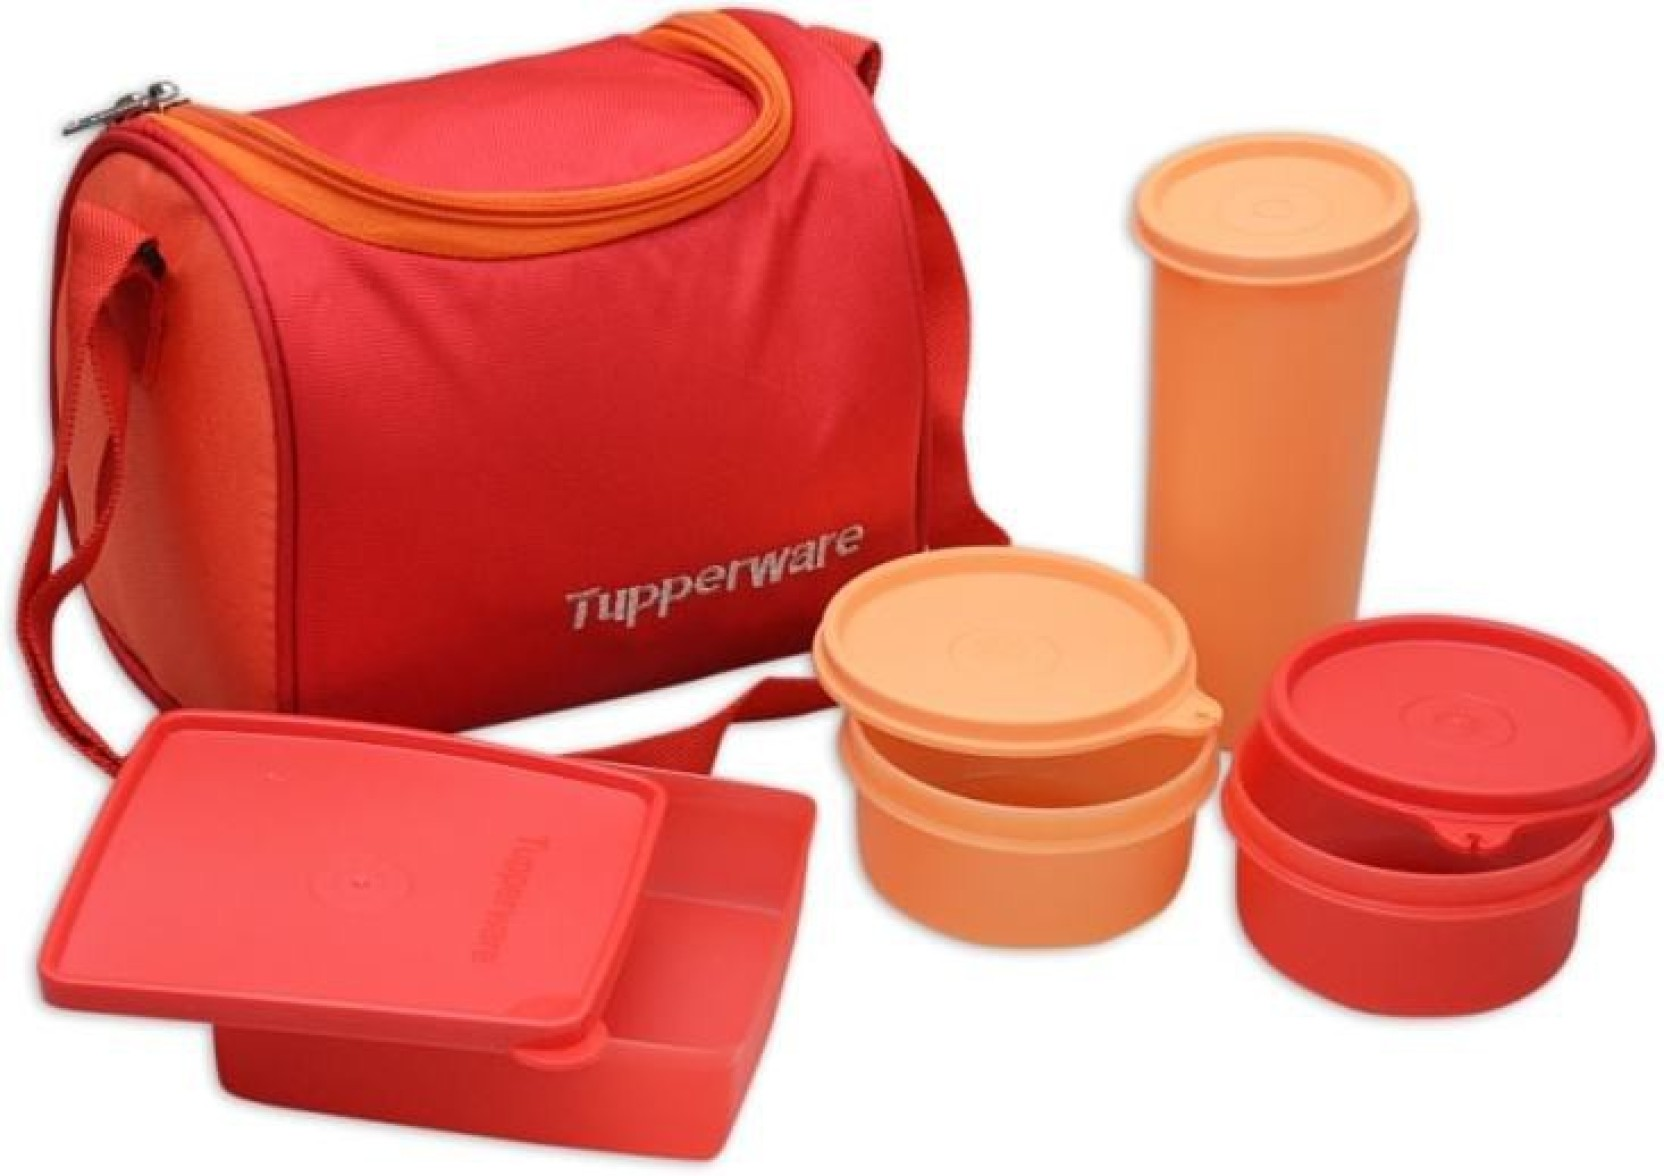 tupperware tp 187 4 containers lunch box. Black Bedroom Furniture Sets. Home Design Ideas